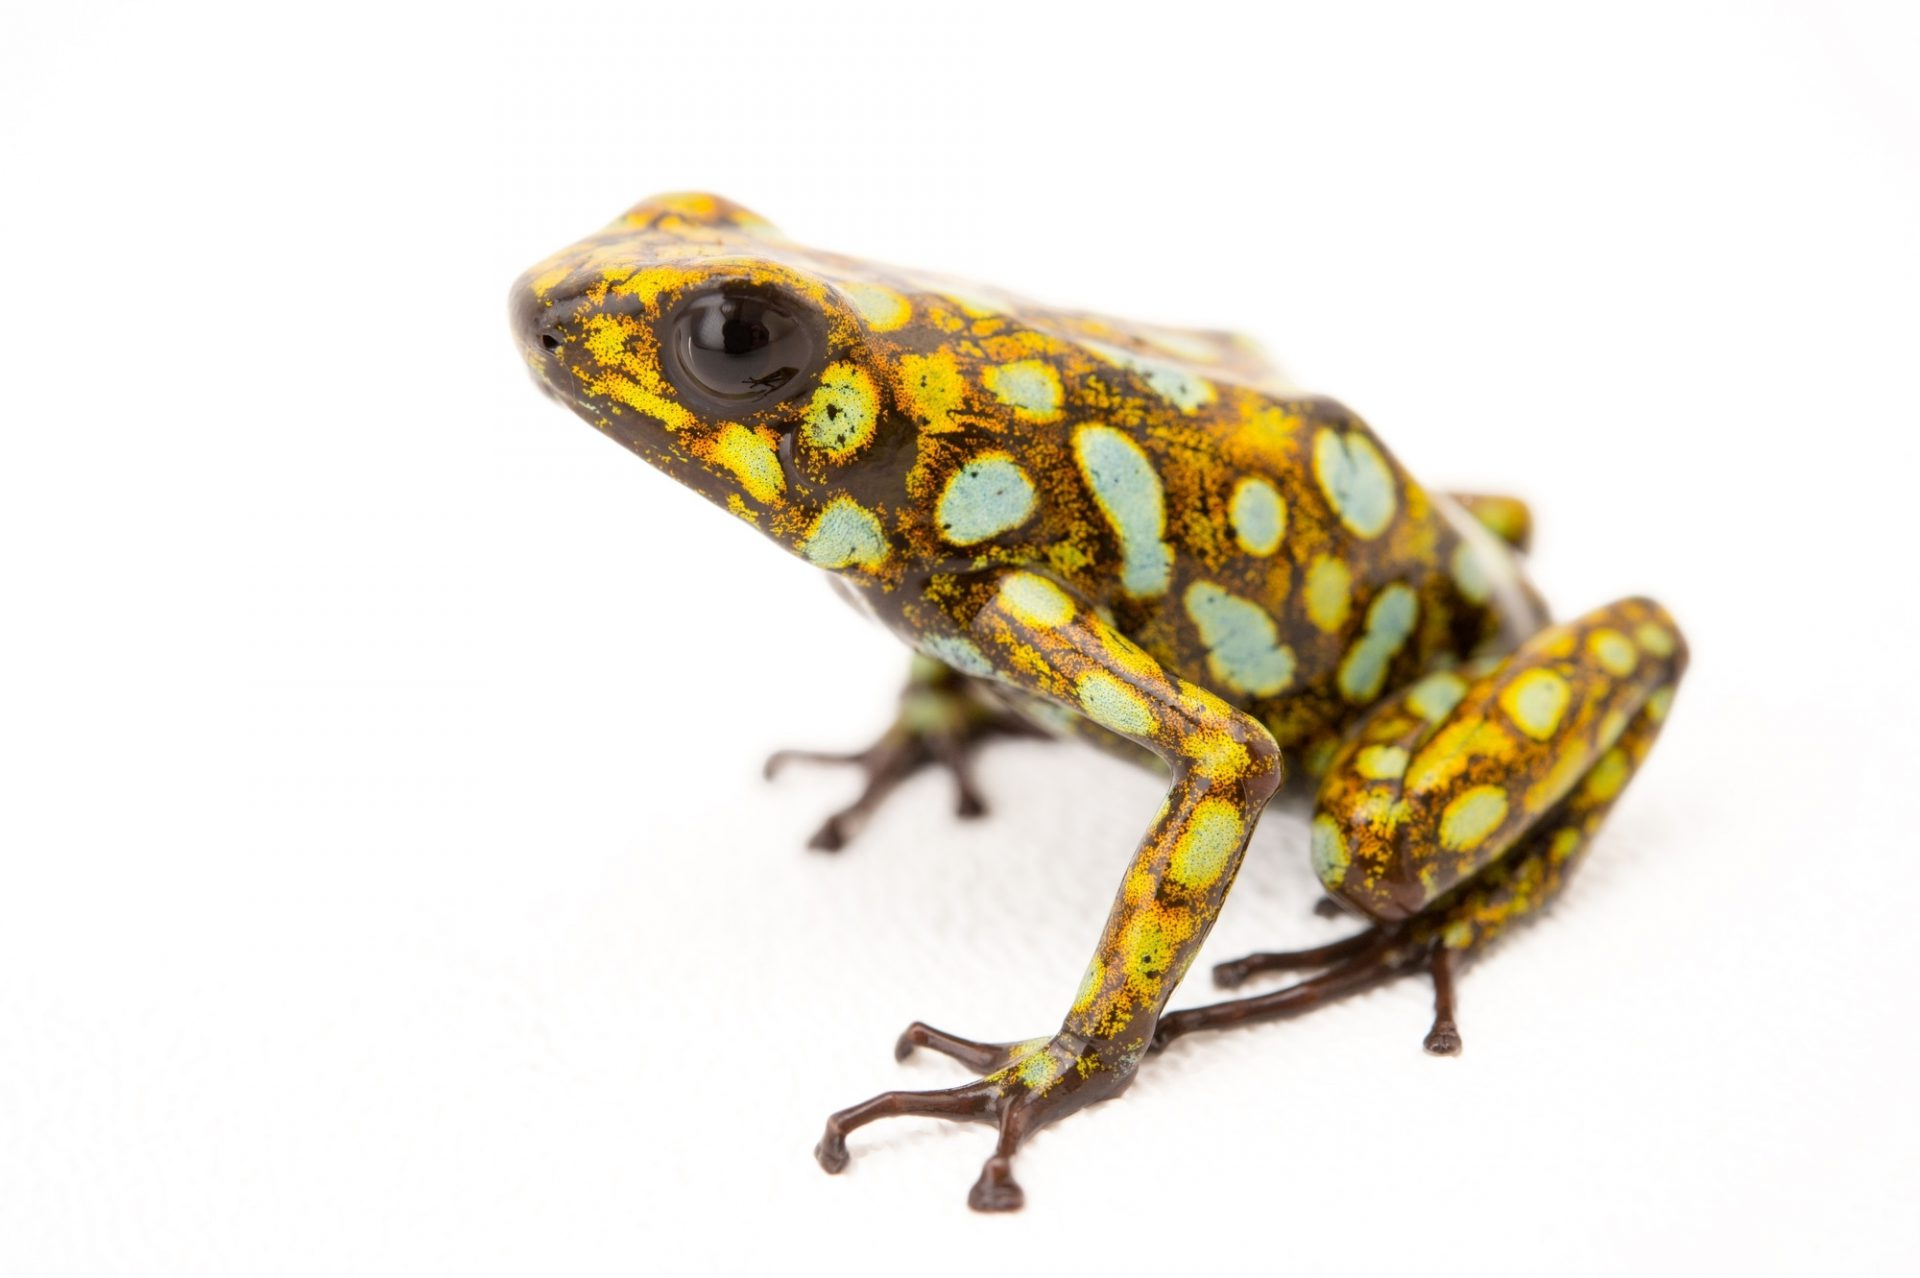 Picture of a diablito, also known as a little devil poison frog (Oophaga sylvatica) Lita/Imbabura, Ecuador locality, from a private collection.